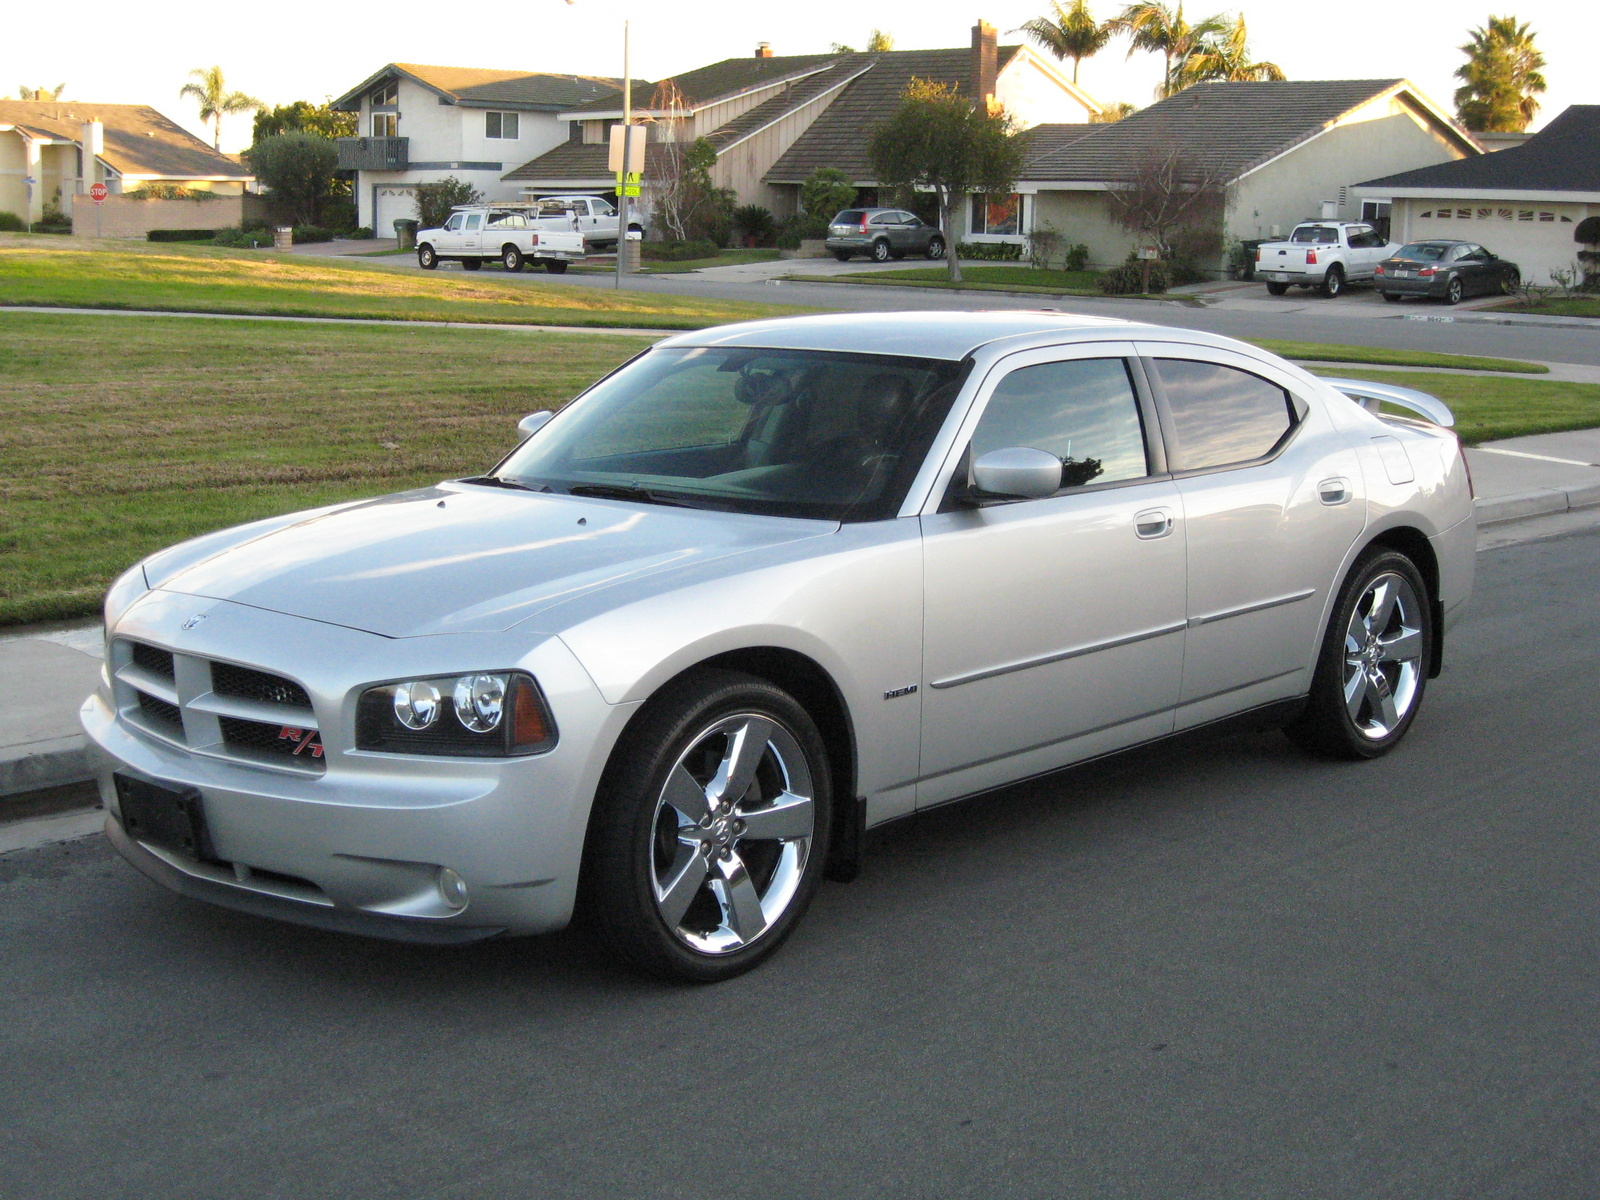 2007 Dodge Charger Exterior Pictures Cargurus